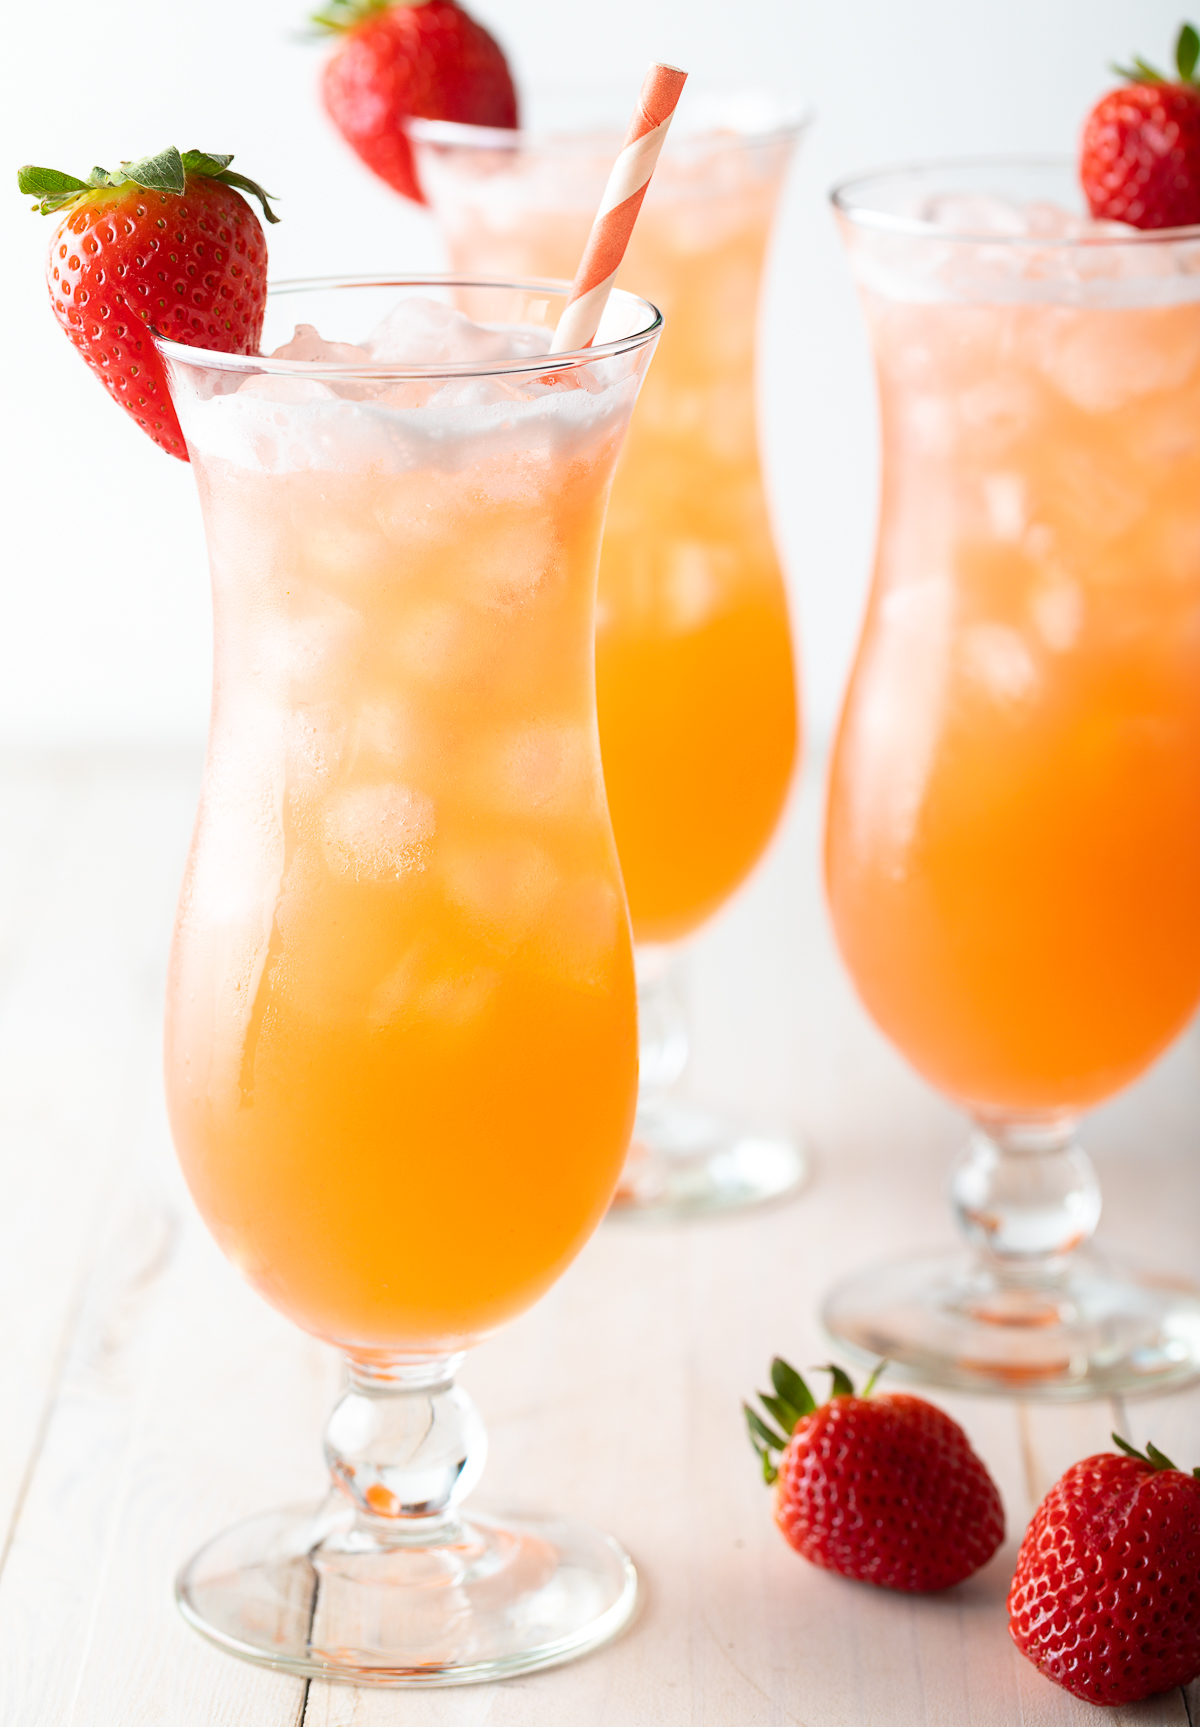 Agua Fresca with Strawberries and Pineapple #cincodemayo #aguafresca #mexican #mocktails